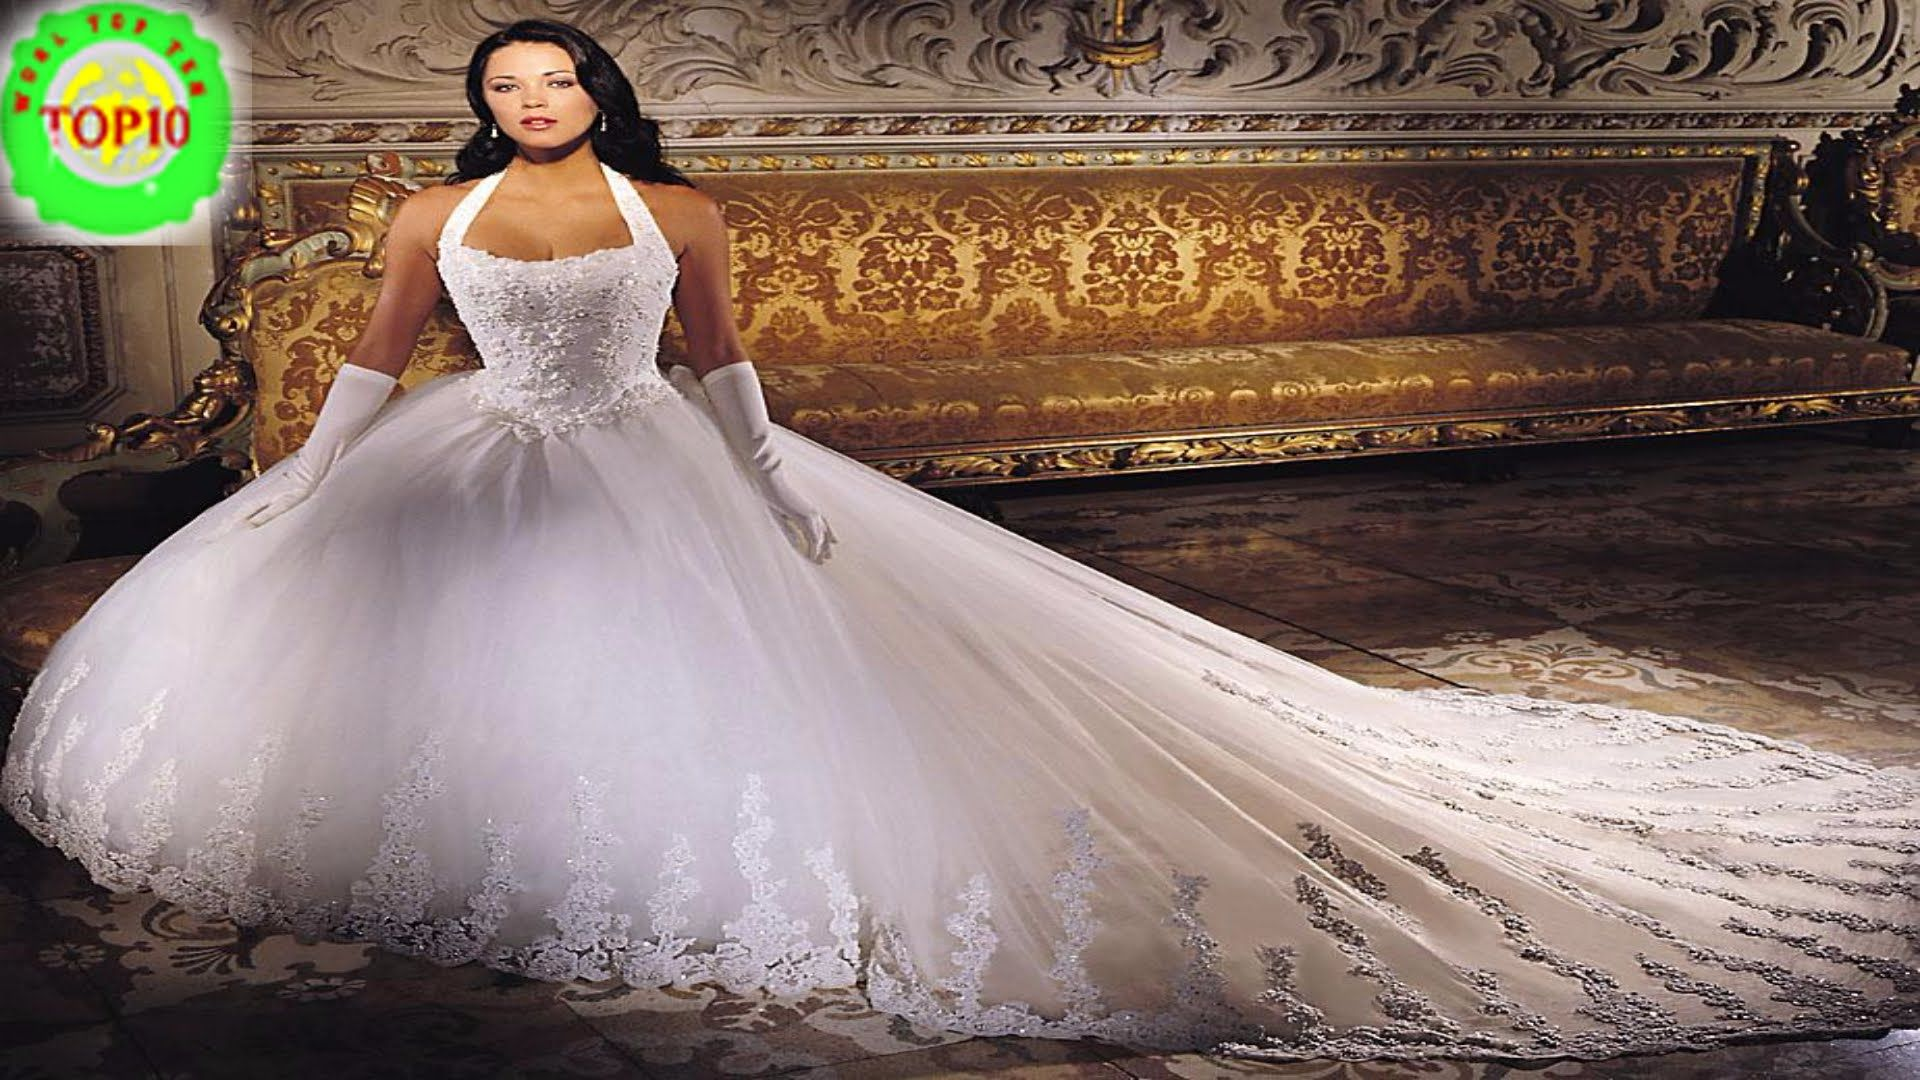 Top 10 Most Expensive Wedding Dress In The World Most Expensive Wedding Dress Expensive Wedding Dress Ball Gown Wedding Dress